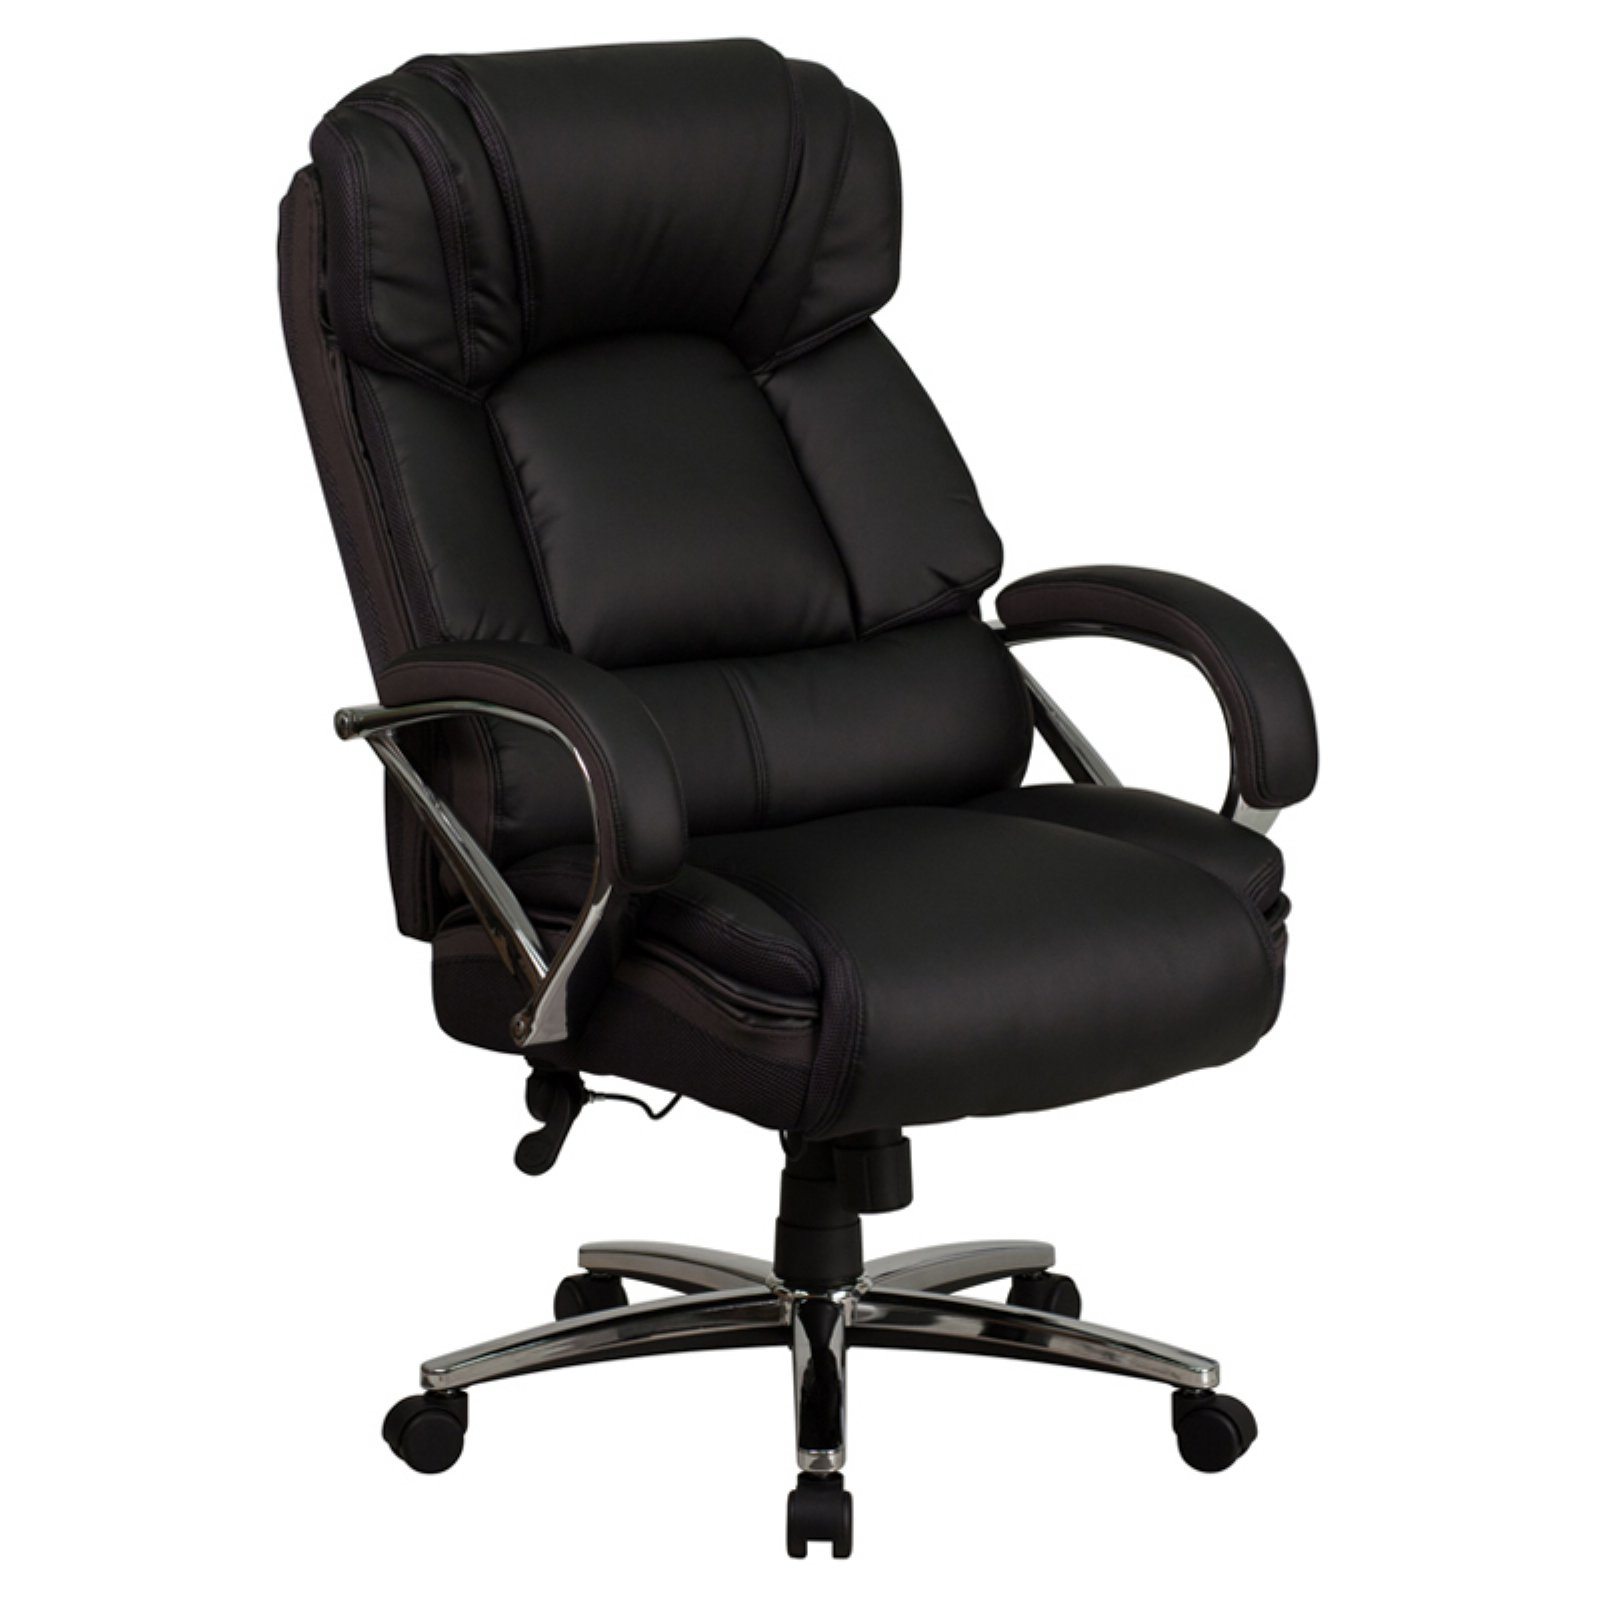 Flash Furniture HERCULES Series 500 lb Capacity Big and Tall Black Leather Executive Swivel Office Chair with Padded Leather Chrome Arms